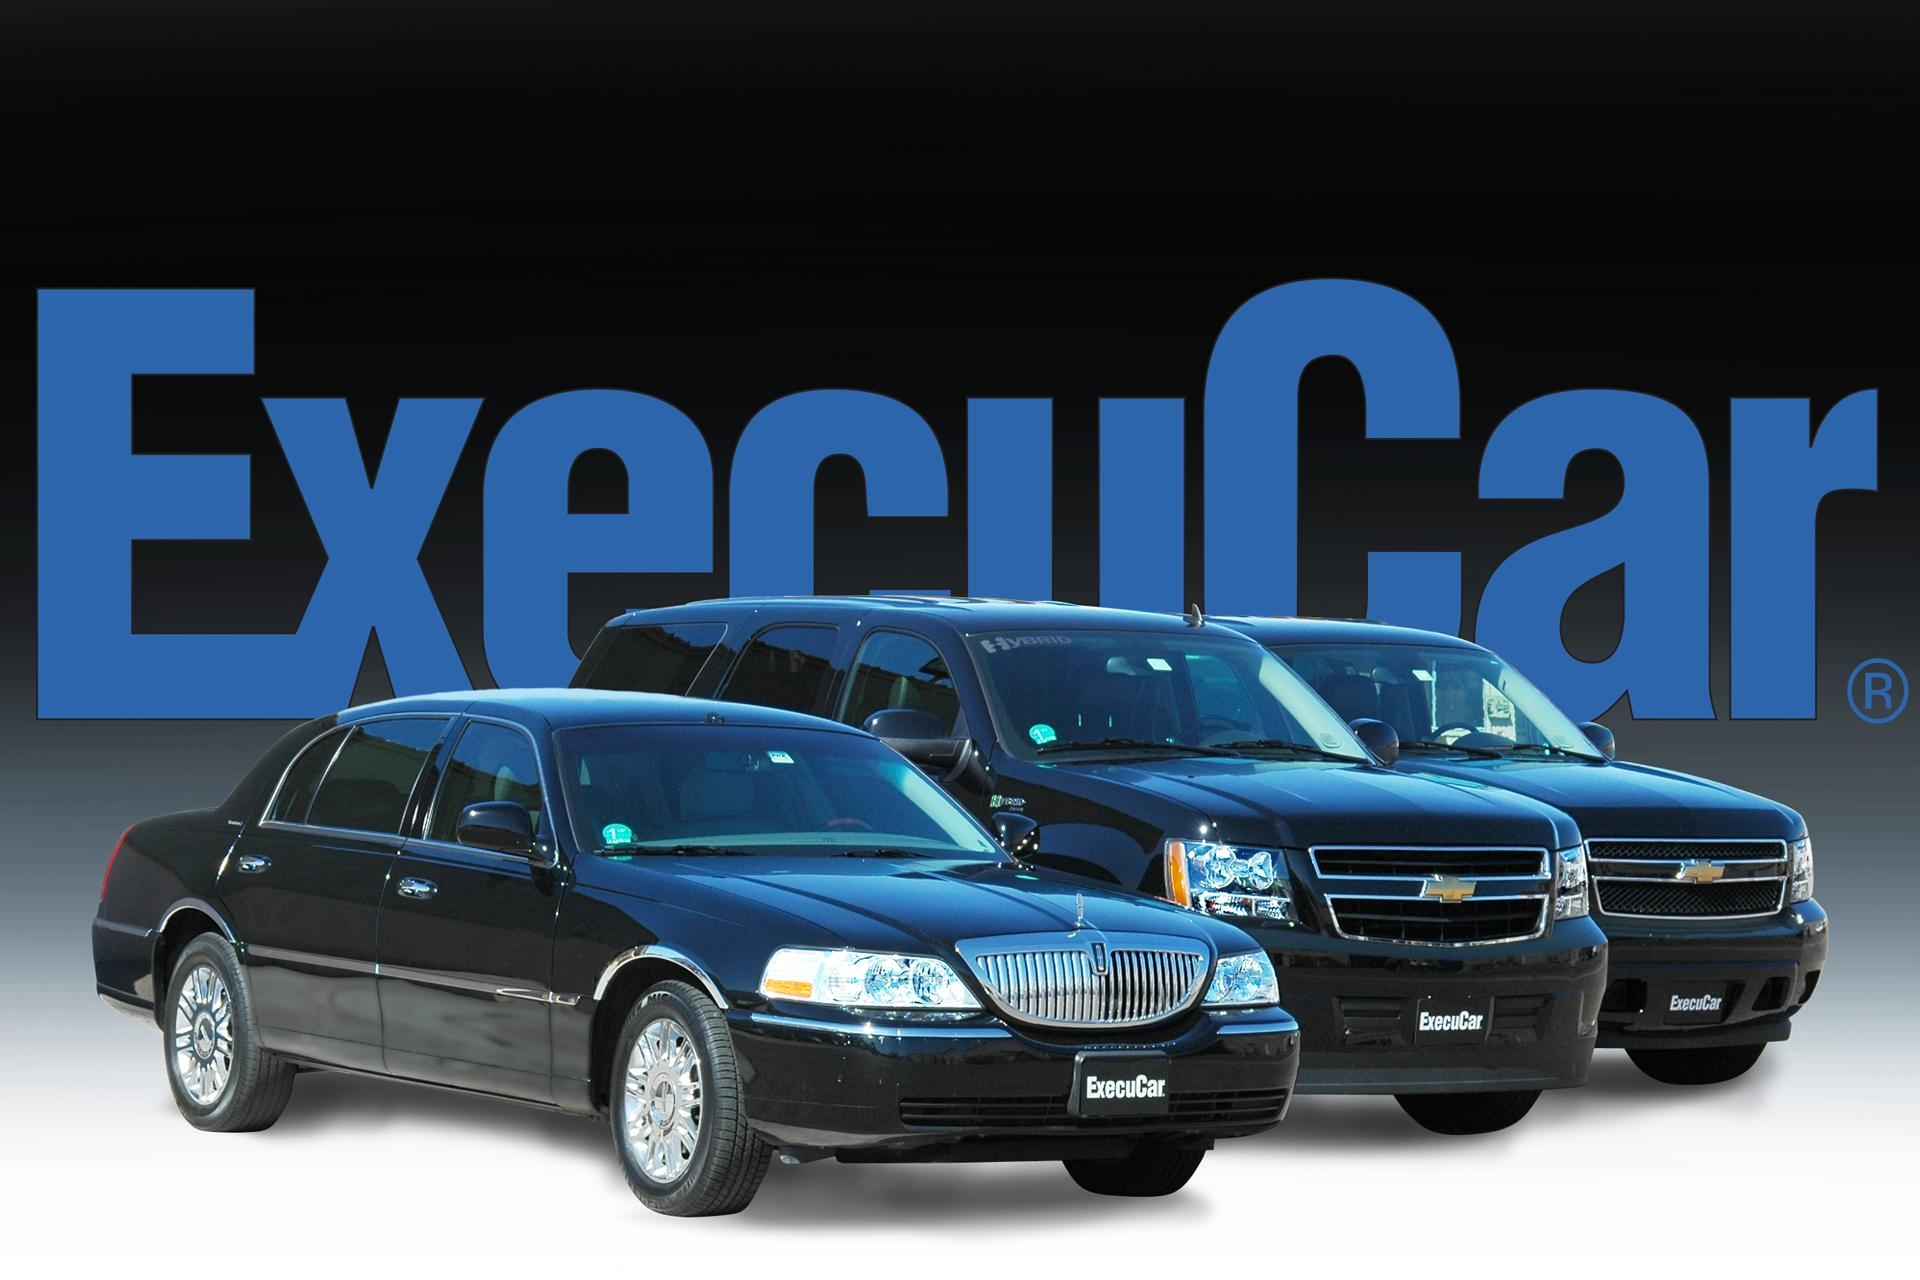 Execucar discount coupons